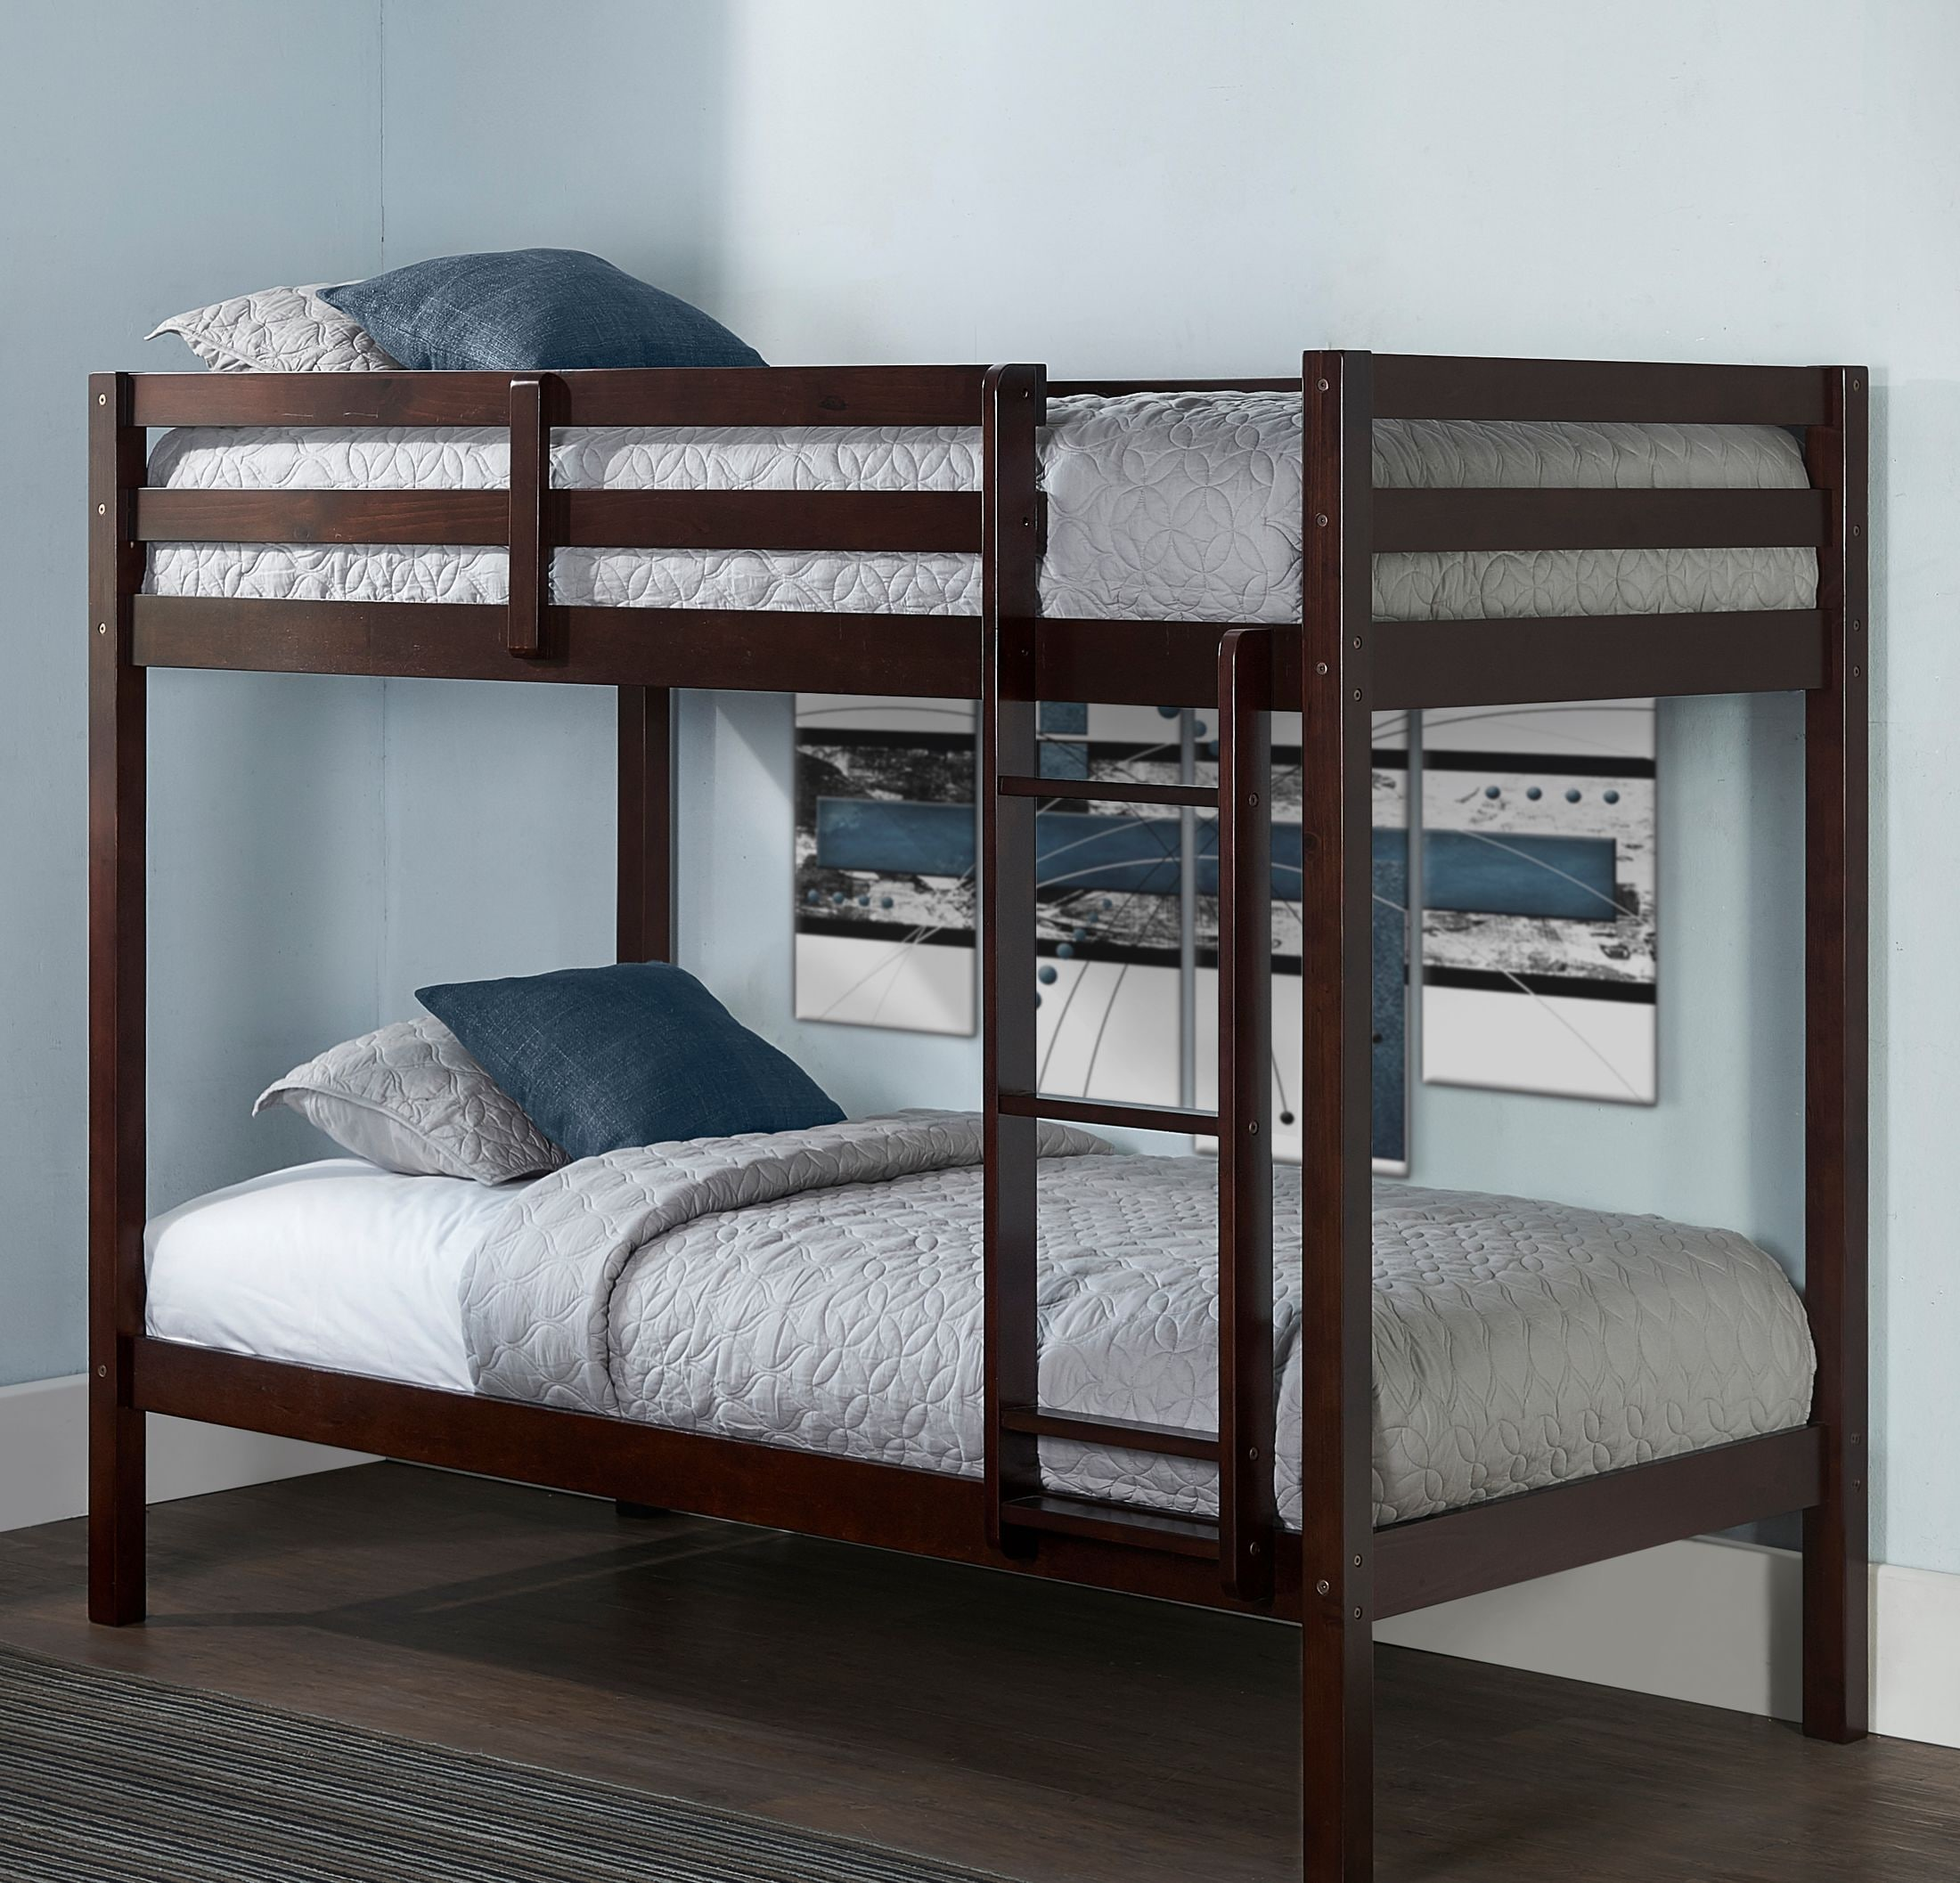 Bedroom Furniture - Hudson Bunk Bed